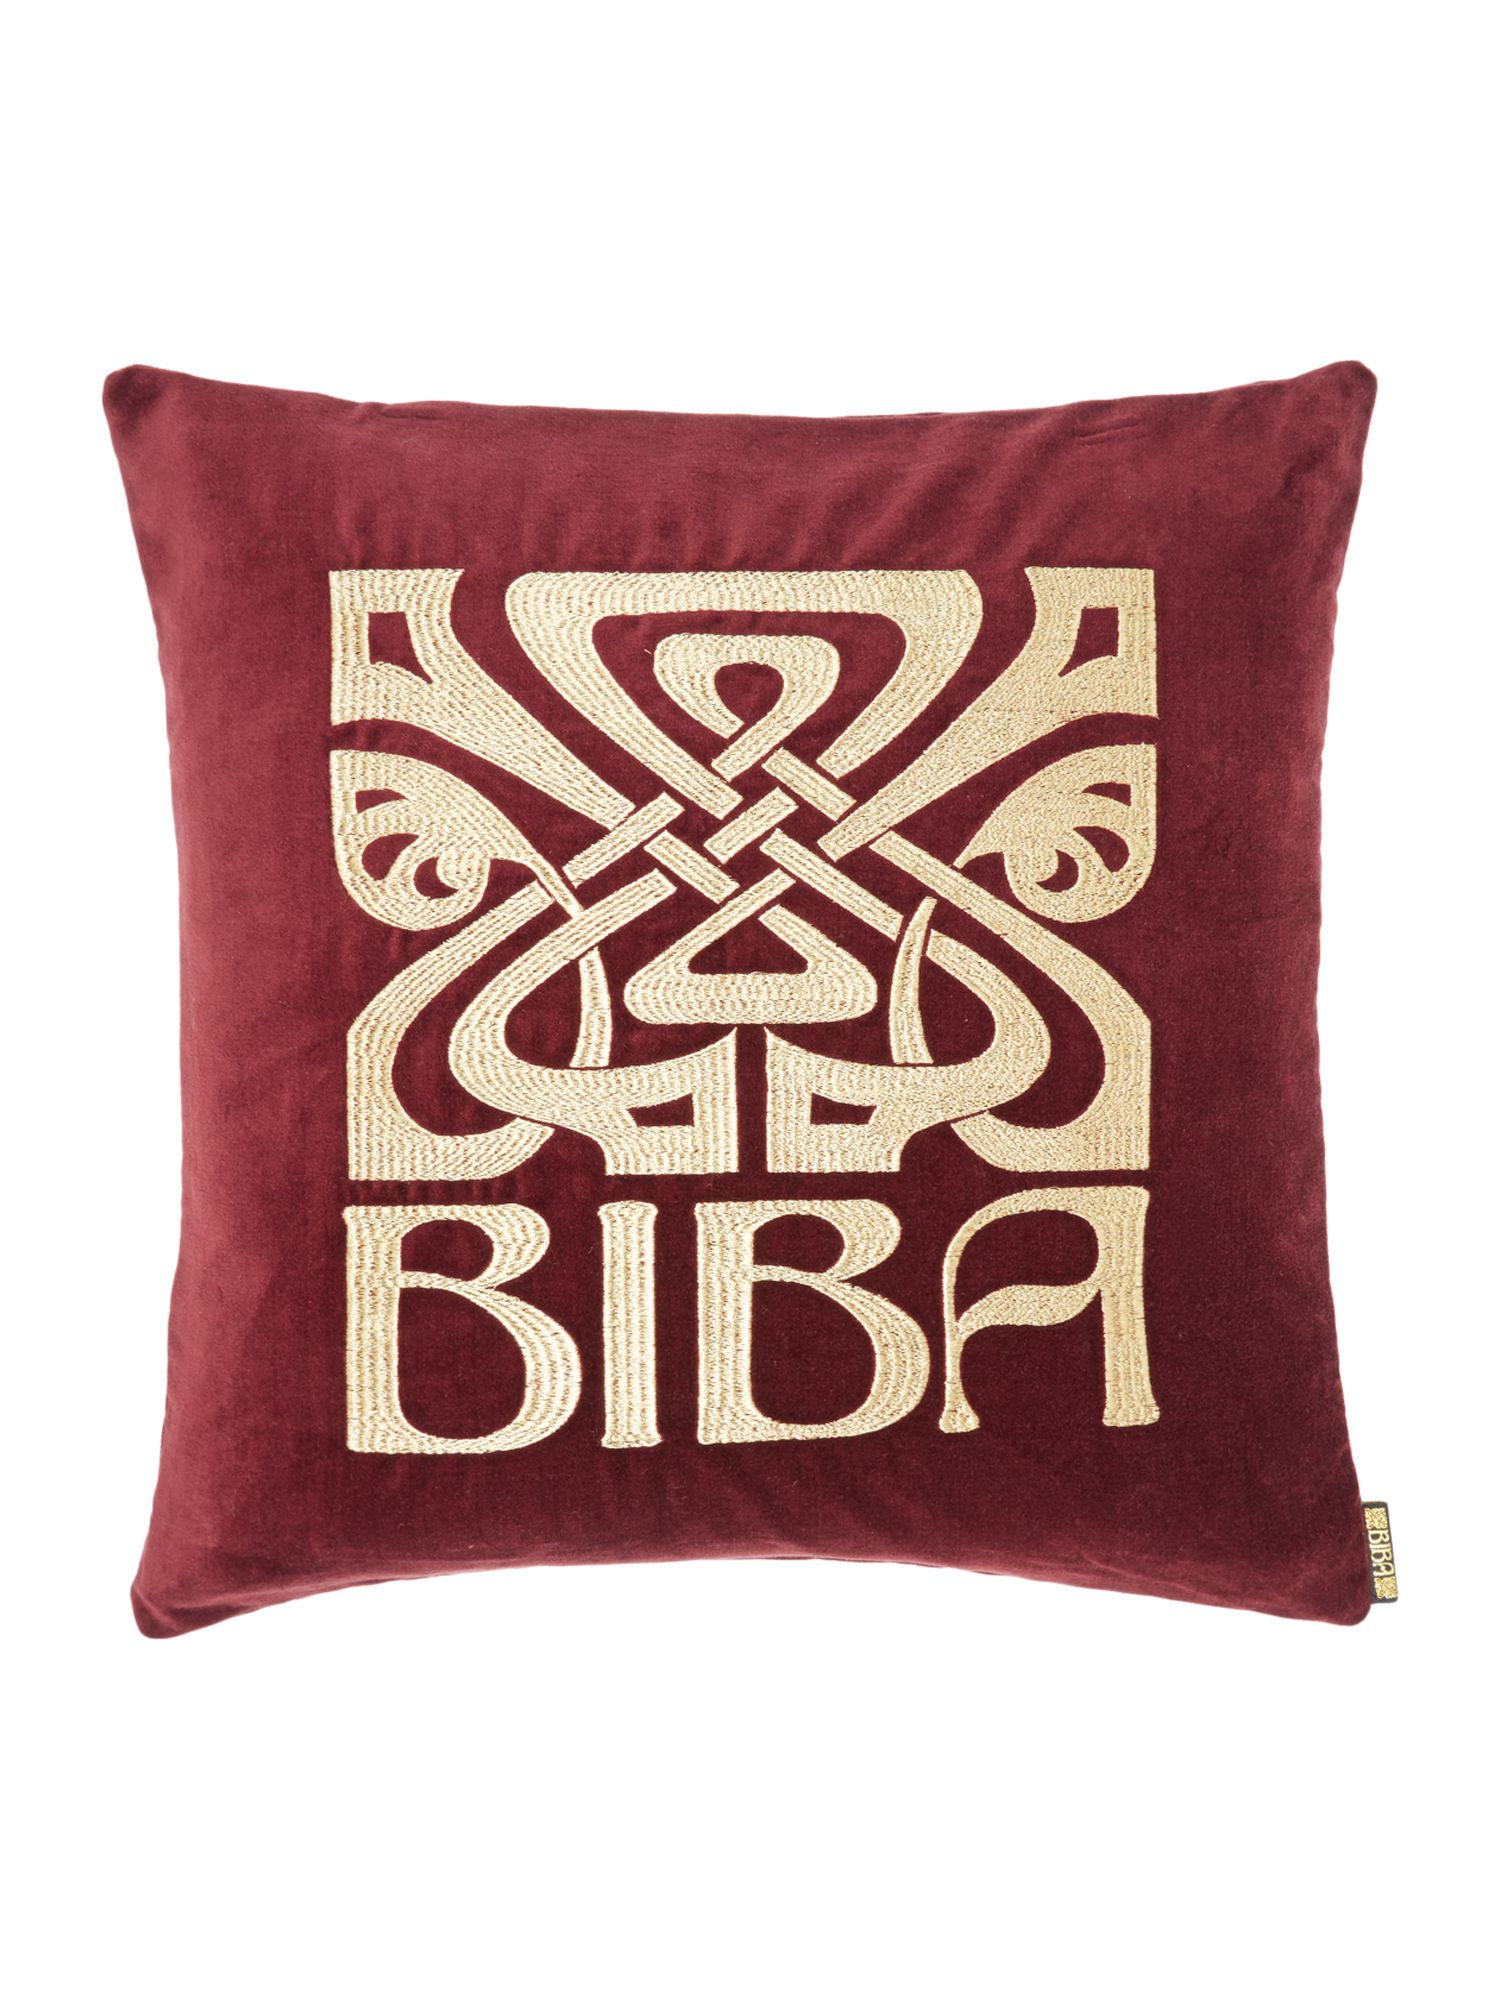 Purple velvet Biba logo cushion